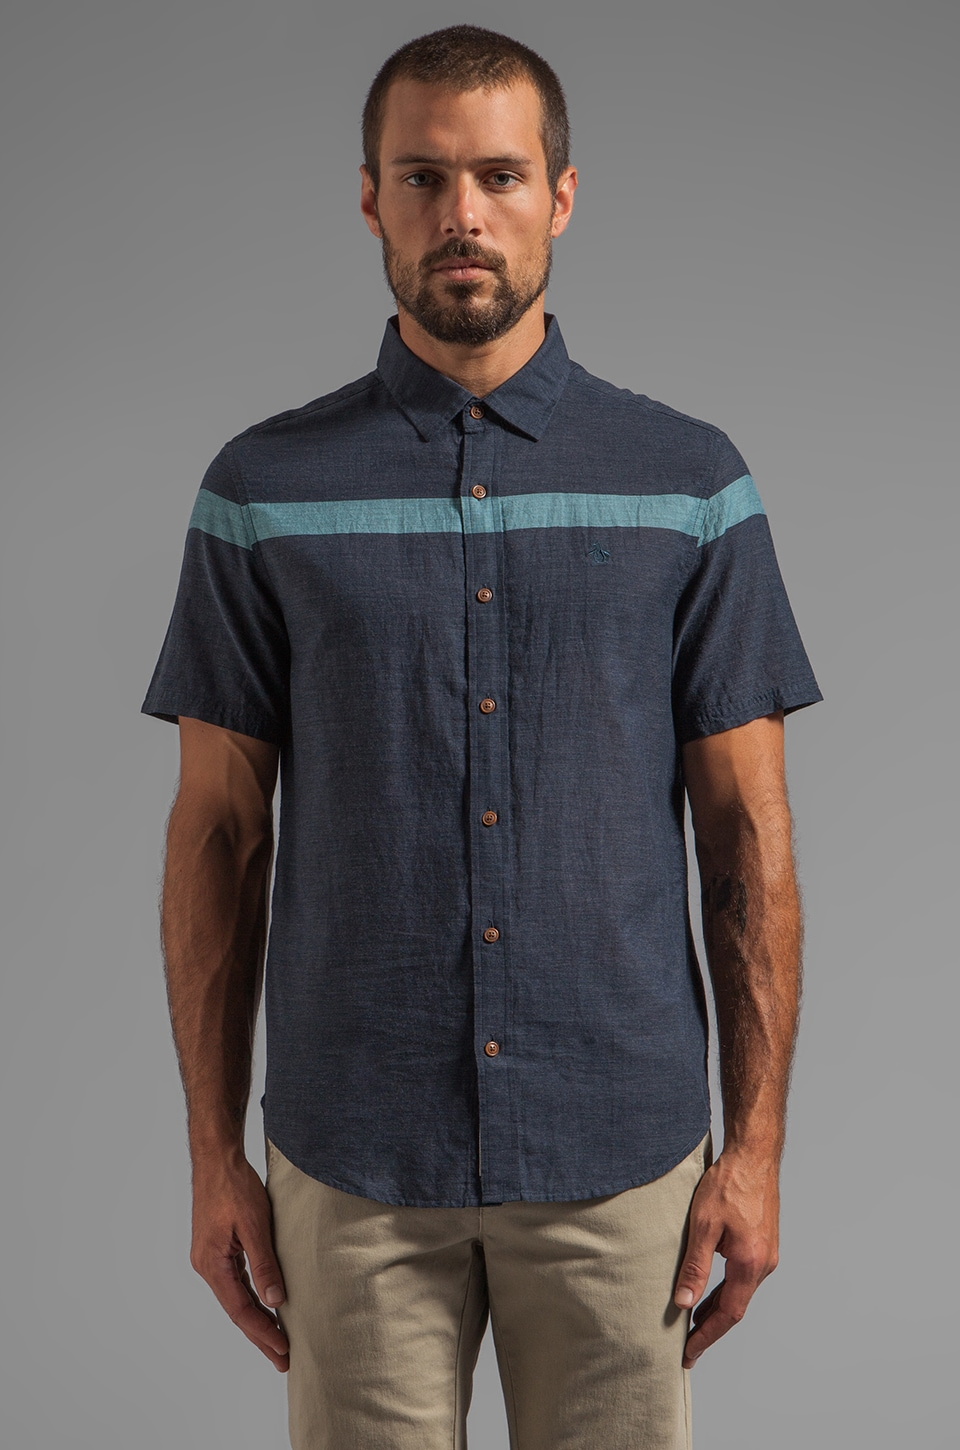 Penguin Engineered Stripe S/S Button Down in India Ink Heather